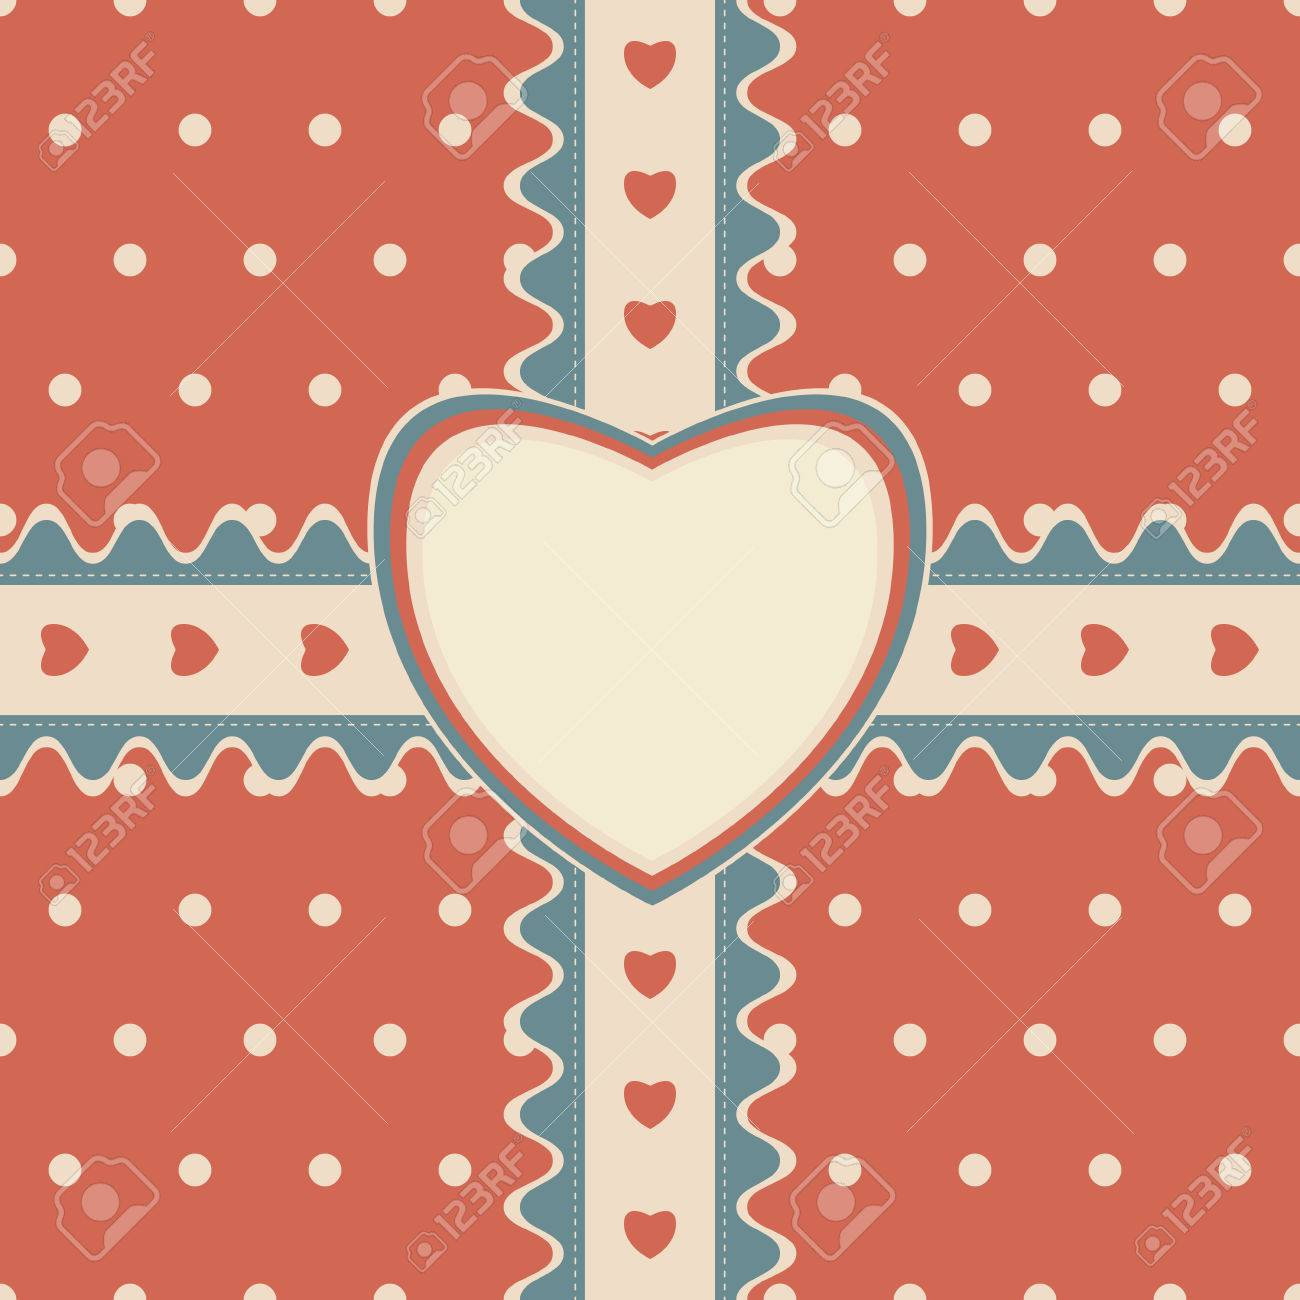 Gift design with stitched ribbon and heart shaped greeting card gift design with stitched ribbon and heart shaped greeting card on cute polka dot background m4hsunfo